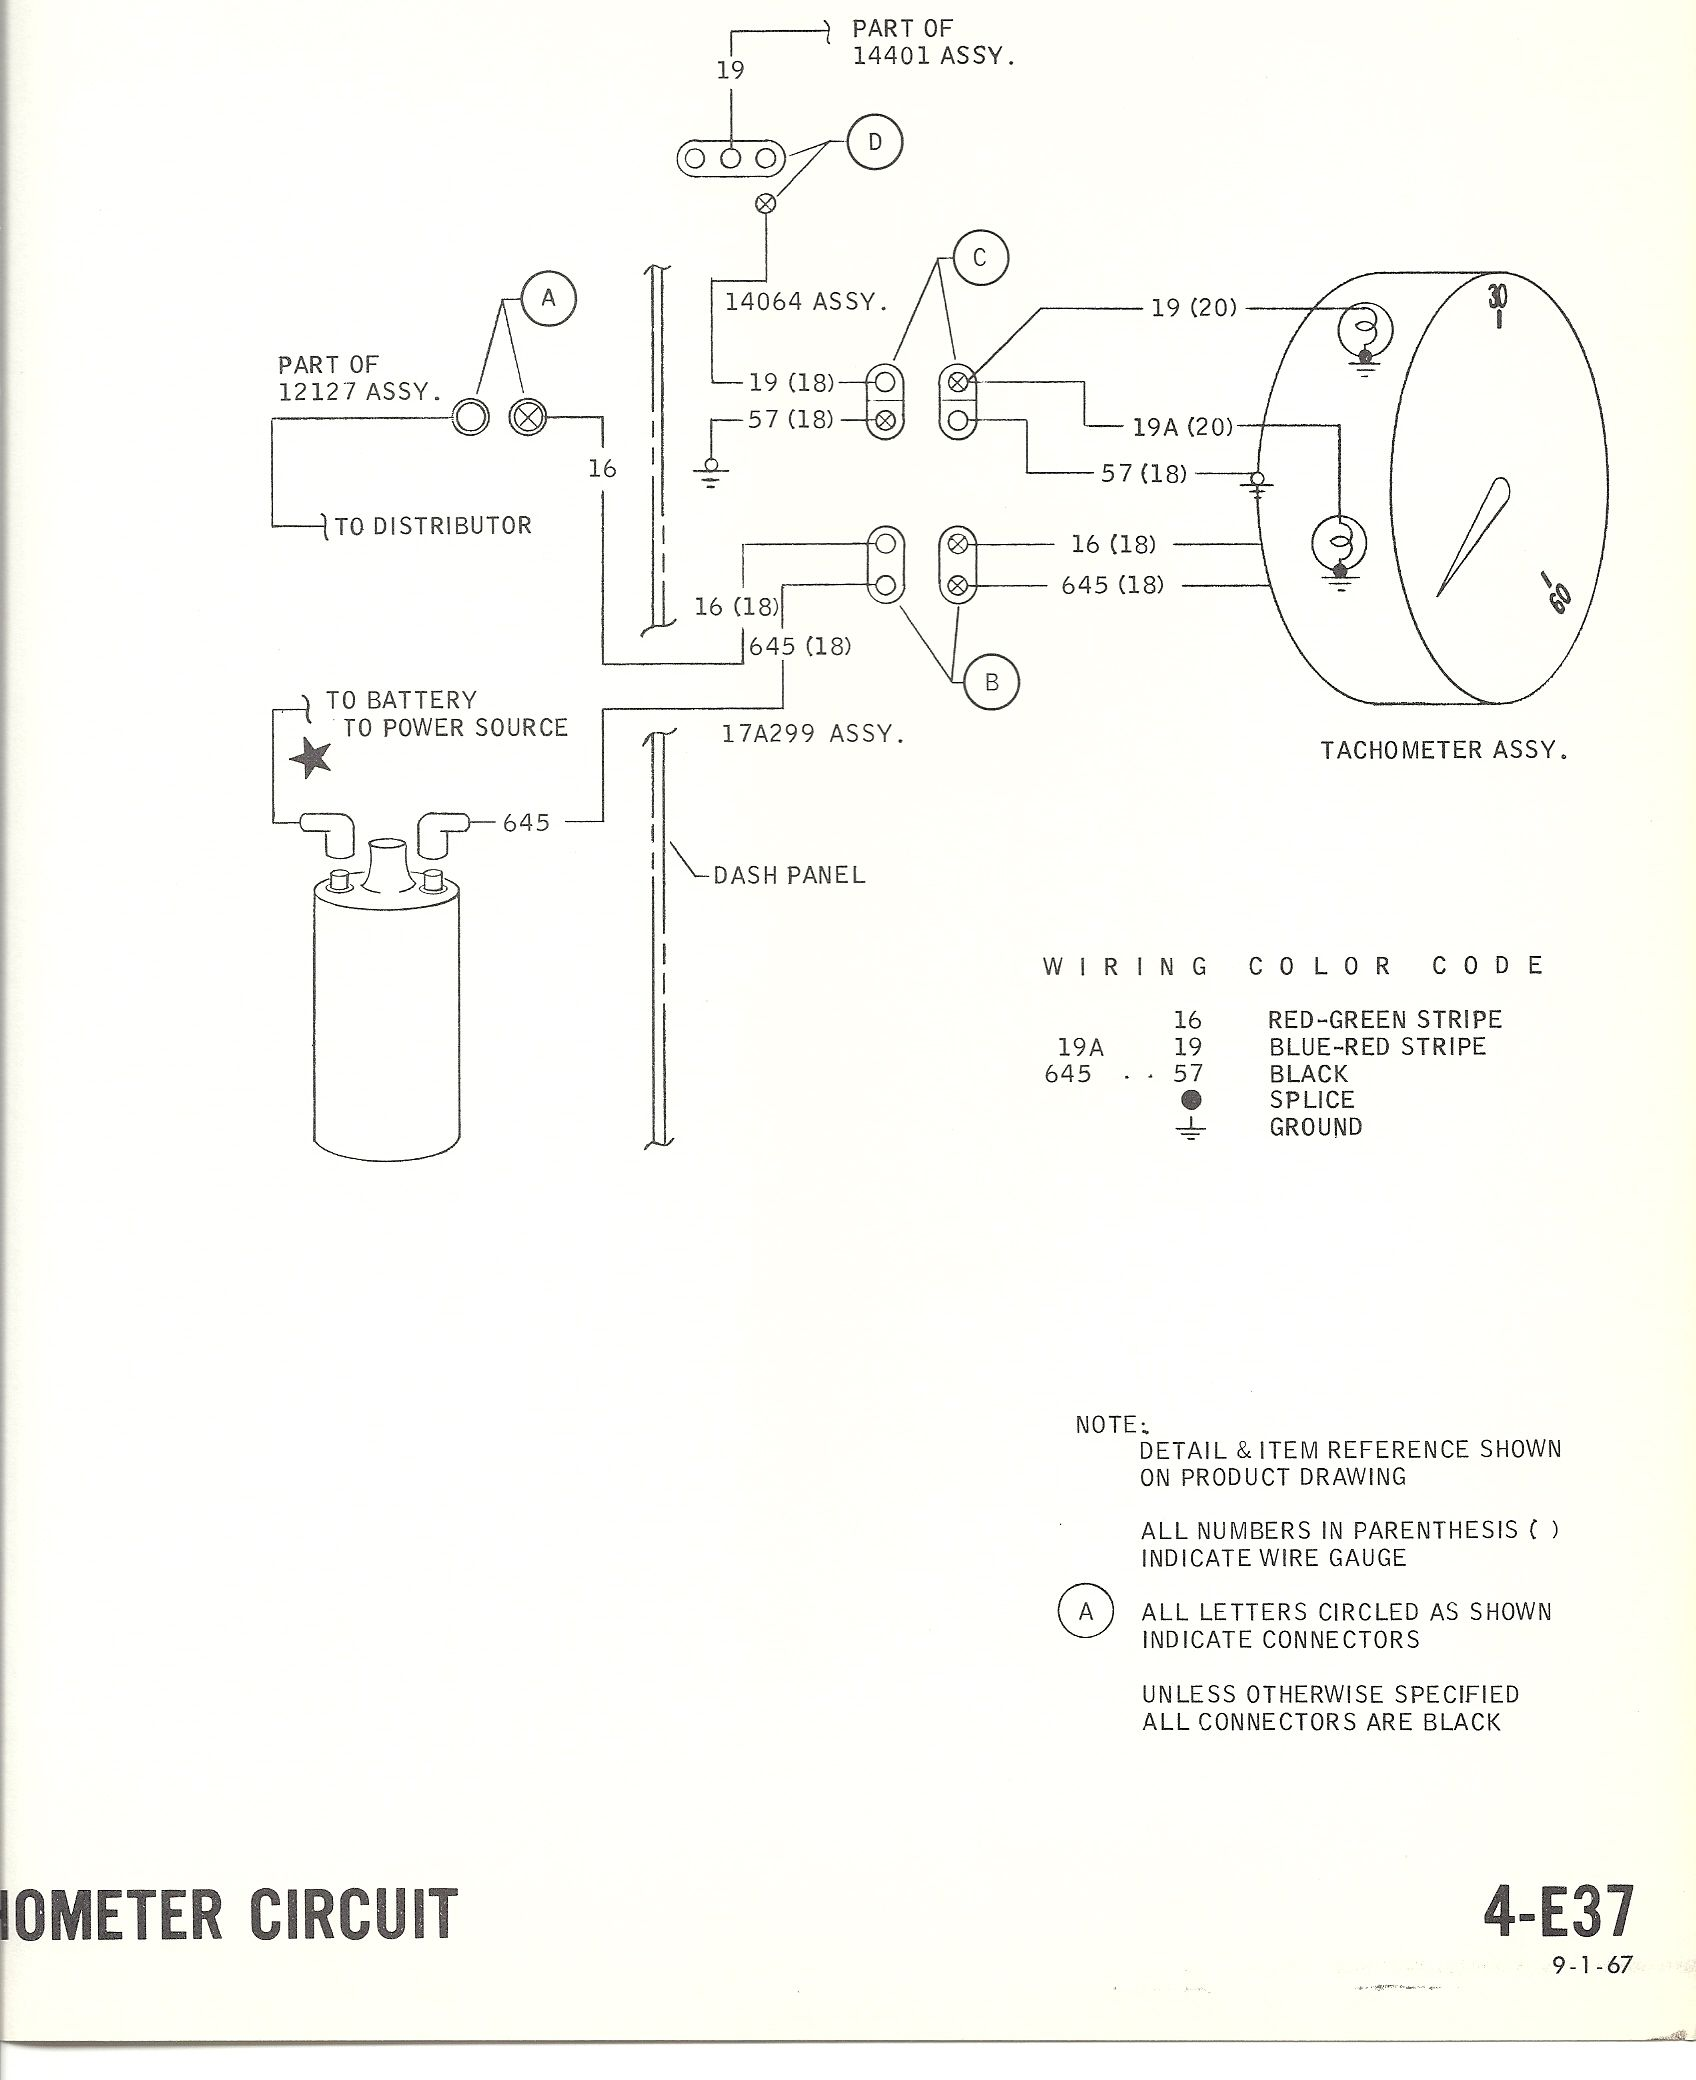 2b2f8e488a4c6a6b870c00f5af30de6c 1967 mustang wiring to tachometer mustang tachometer 1967 mustang ignition switch wiring diagram at gsmportal.co